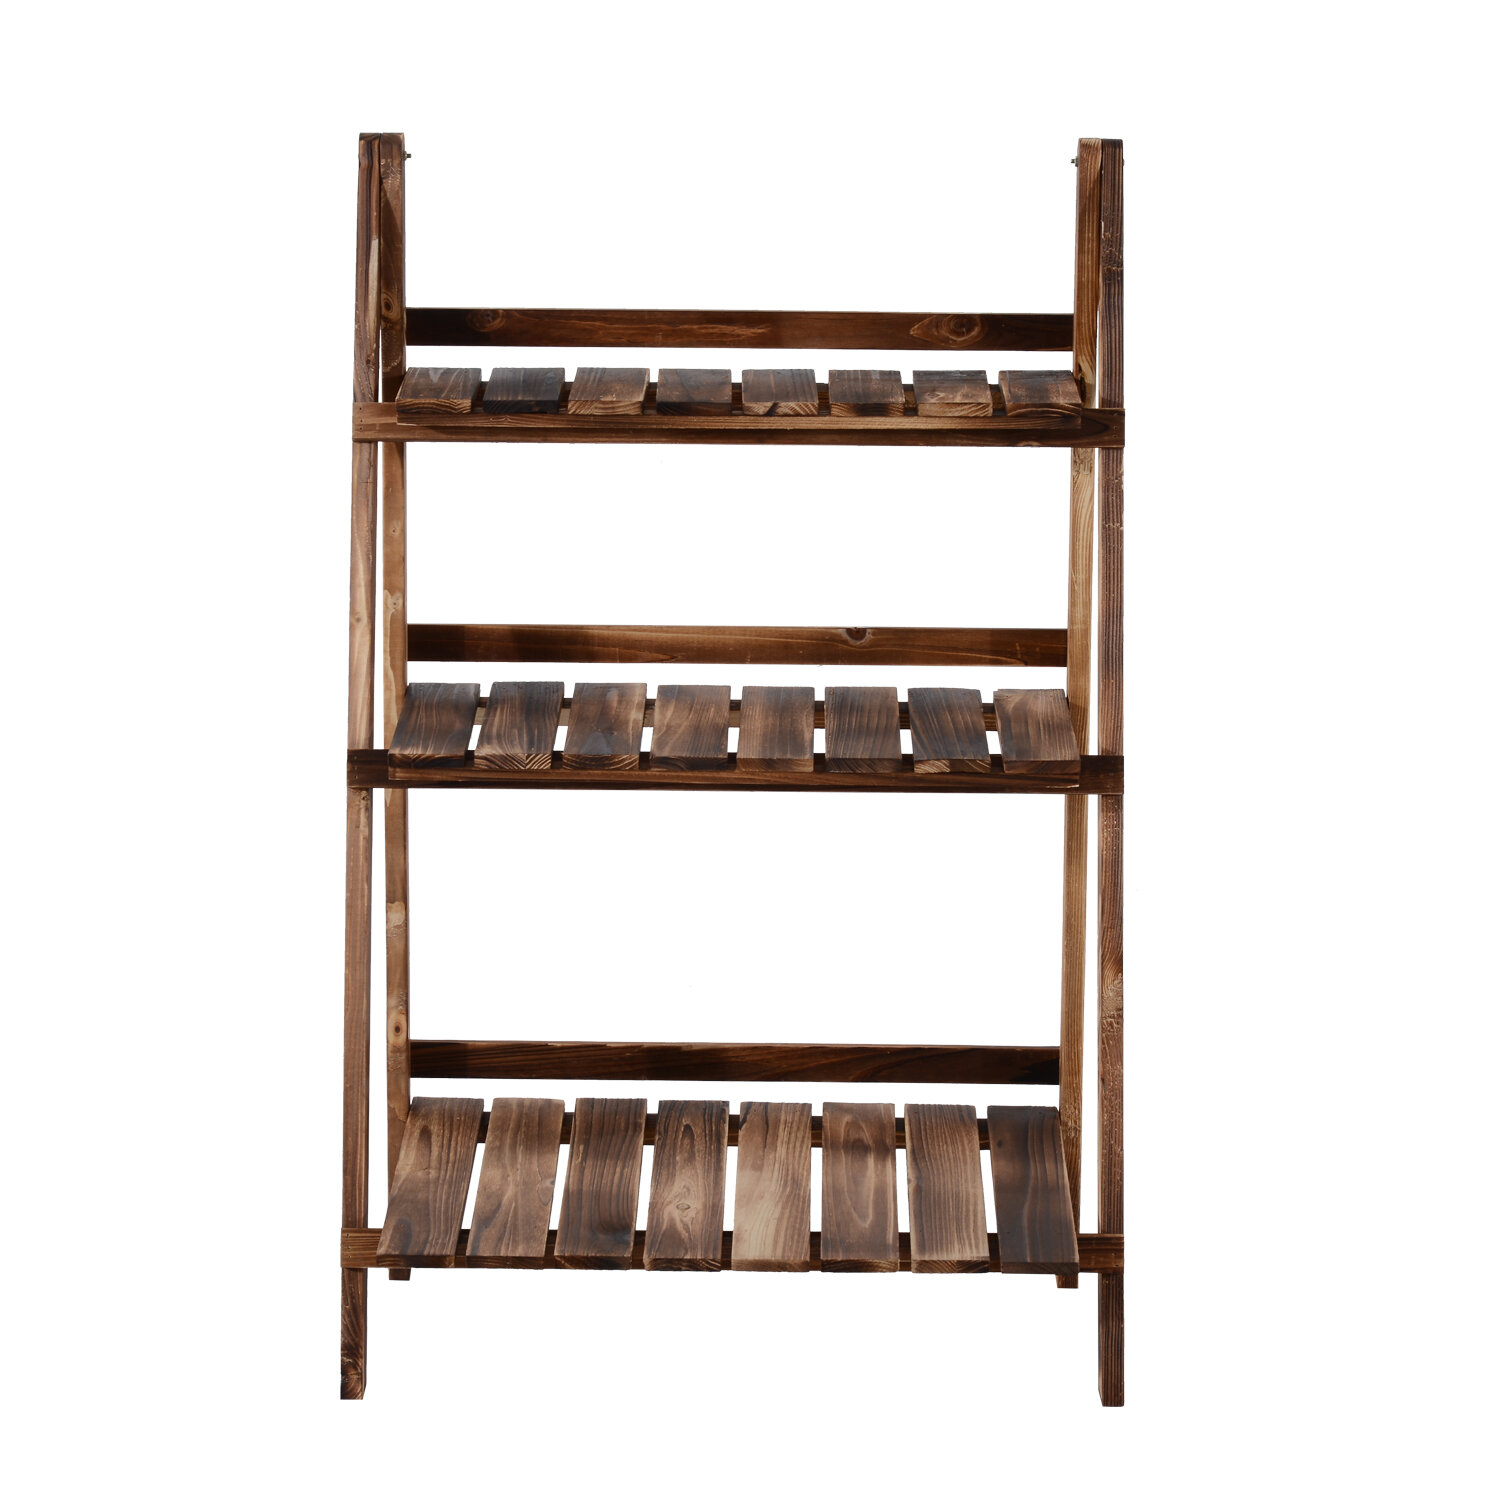 Millwood Pines Odin Wooden Multi Tiered Plant Stand Reviews Wayfair